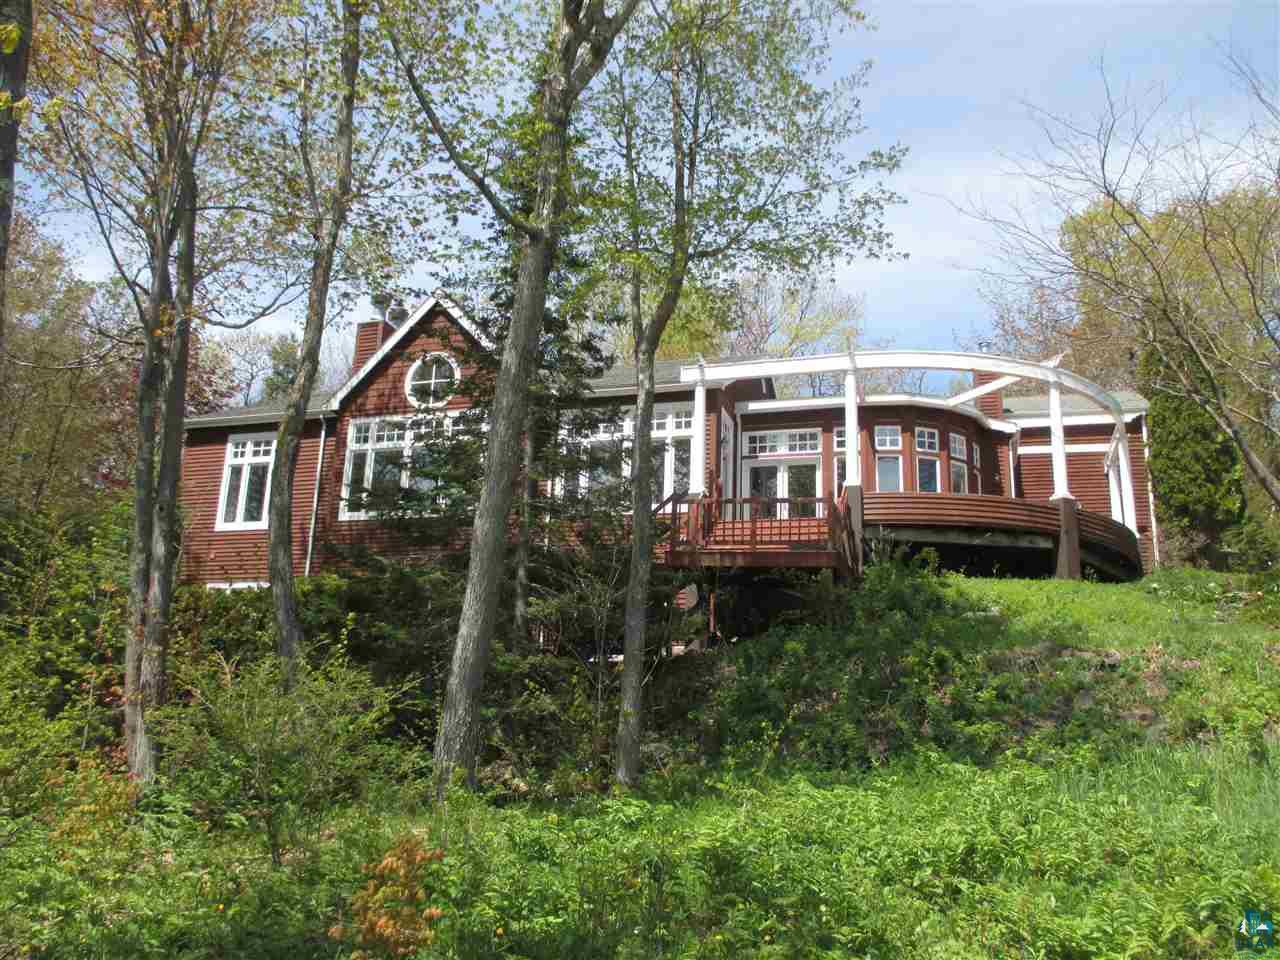 This exquisite home has spectacular views of Lake Superior and almost the entire length of Madeline Island from just about every room!  Right outside Bayfield on a large wooded and very private 2-acre parcel, you'll see the daily changing nature of the Lake, with fantastic sunrises and night skies. This top quality home has a thoughtful floor plan, designed to maximize Lake & Island views, providing open spaces for gracious entertaining and private areas for relaxation, study or work. High ceilings, hardwood, tile and slate floors, floor-to-ceiling windows, gently curving walls and multiple fireplaces to warm your heart!  Main floor has a large master bedroom/bathroom suite and lower level adds two more bedrooms, family/rec room, kitchenette and plenty of storage space. Huge wraparound deck & lower patio. Perched above the fairways at Apostle Highlands Golf Course, with that sweet southeasterly Island view, you'll find beauty, quiet and solitude any season of the year! 2 Extra lots available for $20,000 combined.